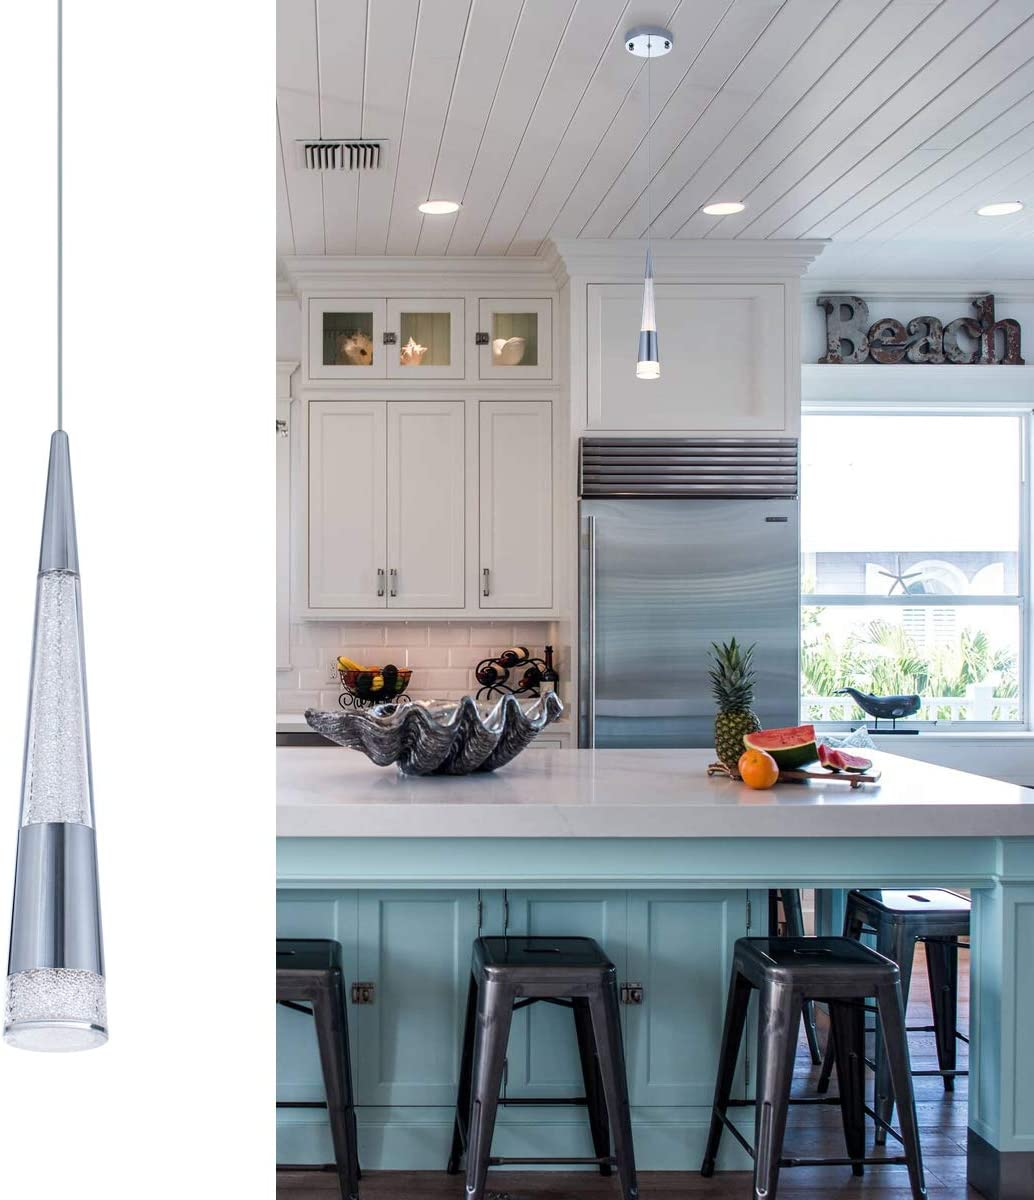 VILUXY Modern Kitchen Island Pendant Lighting, Adjustable LED Cone Pendant Light with Silver Plating Nickel Finish Acrylic Shade for Dining Rooms 7W, Warm White 3000K